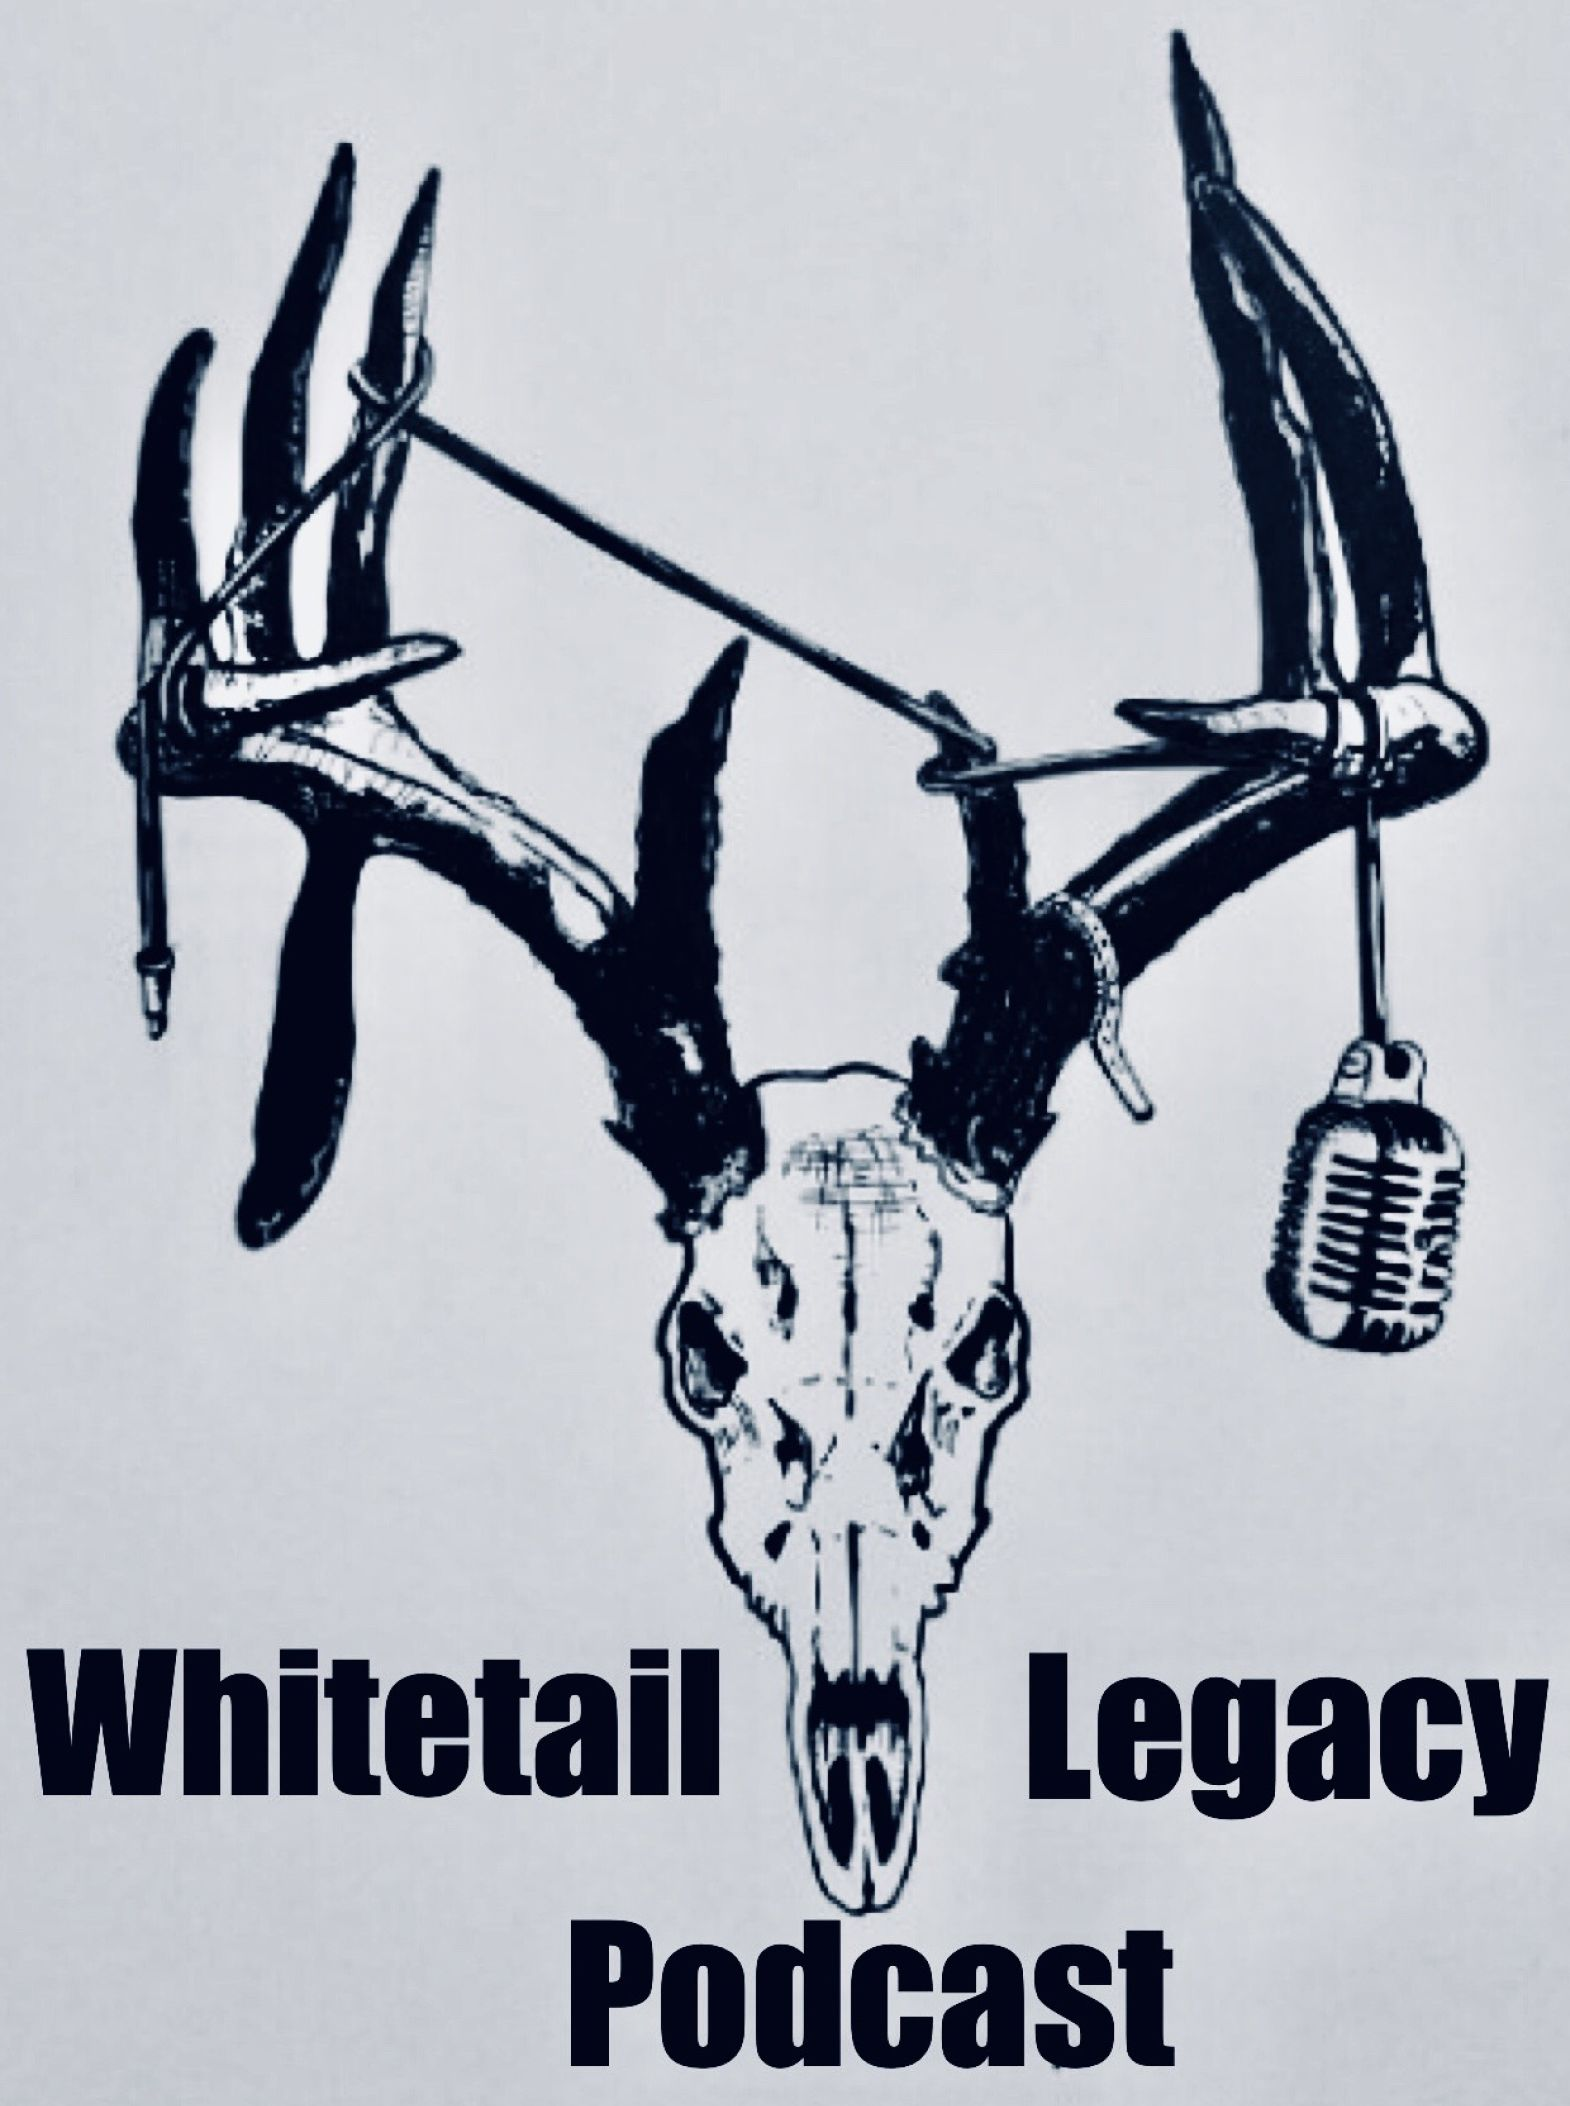 Whitetail Legacy Podcast